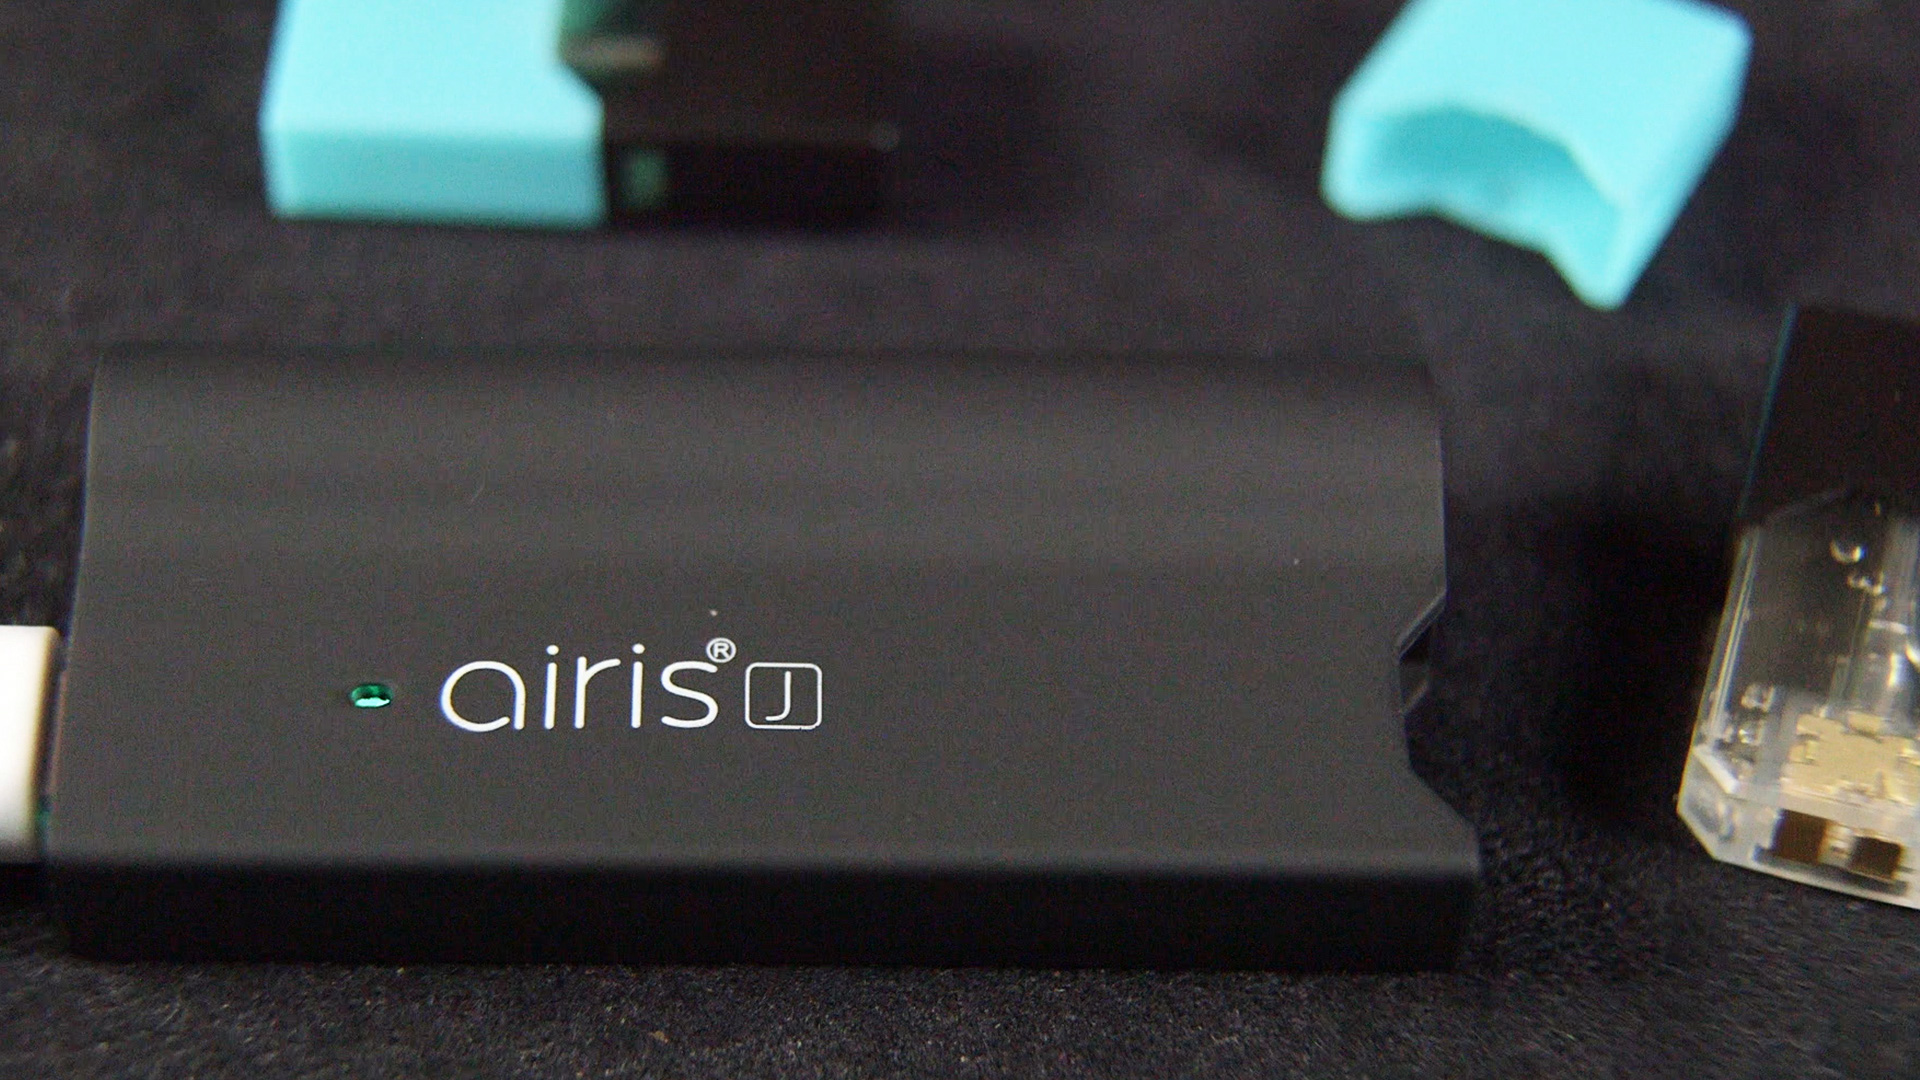 airis-j-pods-vaporizer-review-thumbnail-1